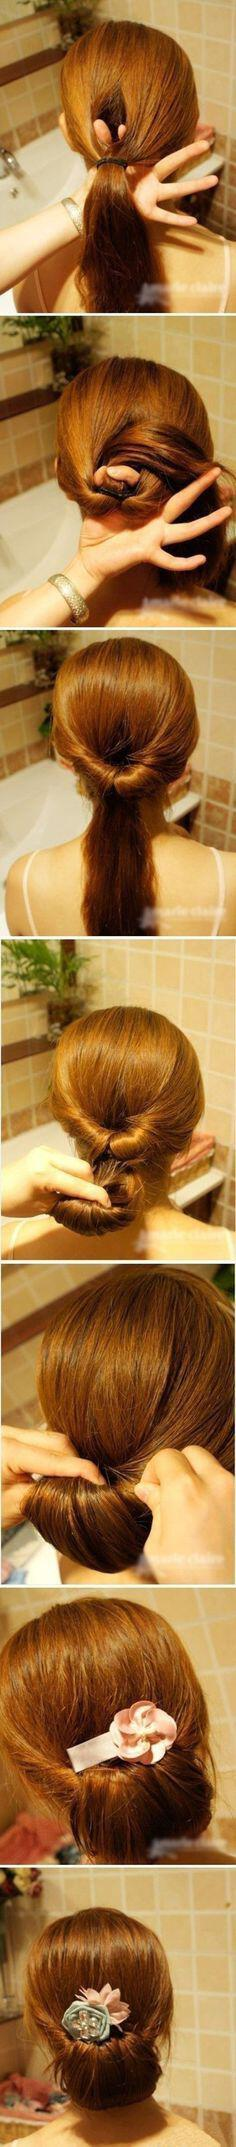 12 simple office hairstyles you have to try - 12 simple office hairstyles you have to try